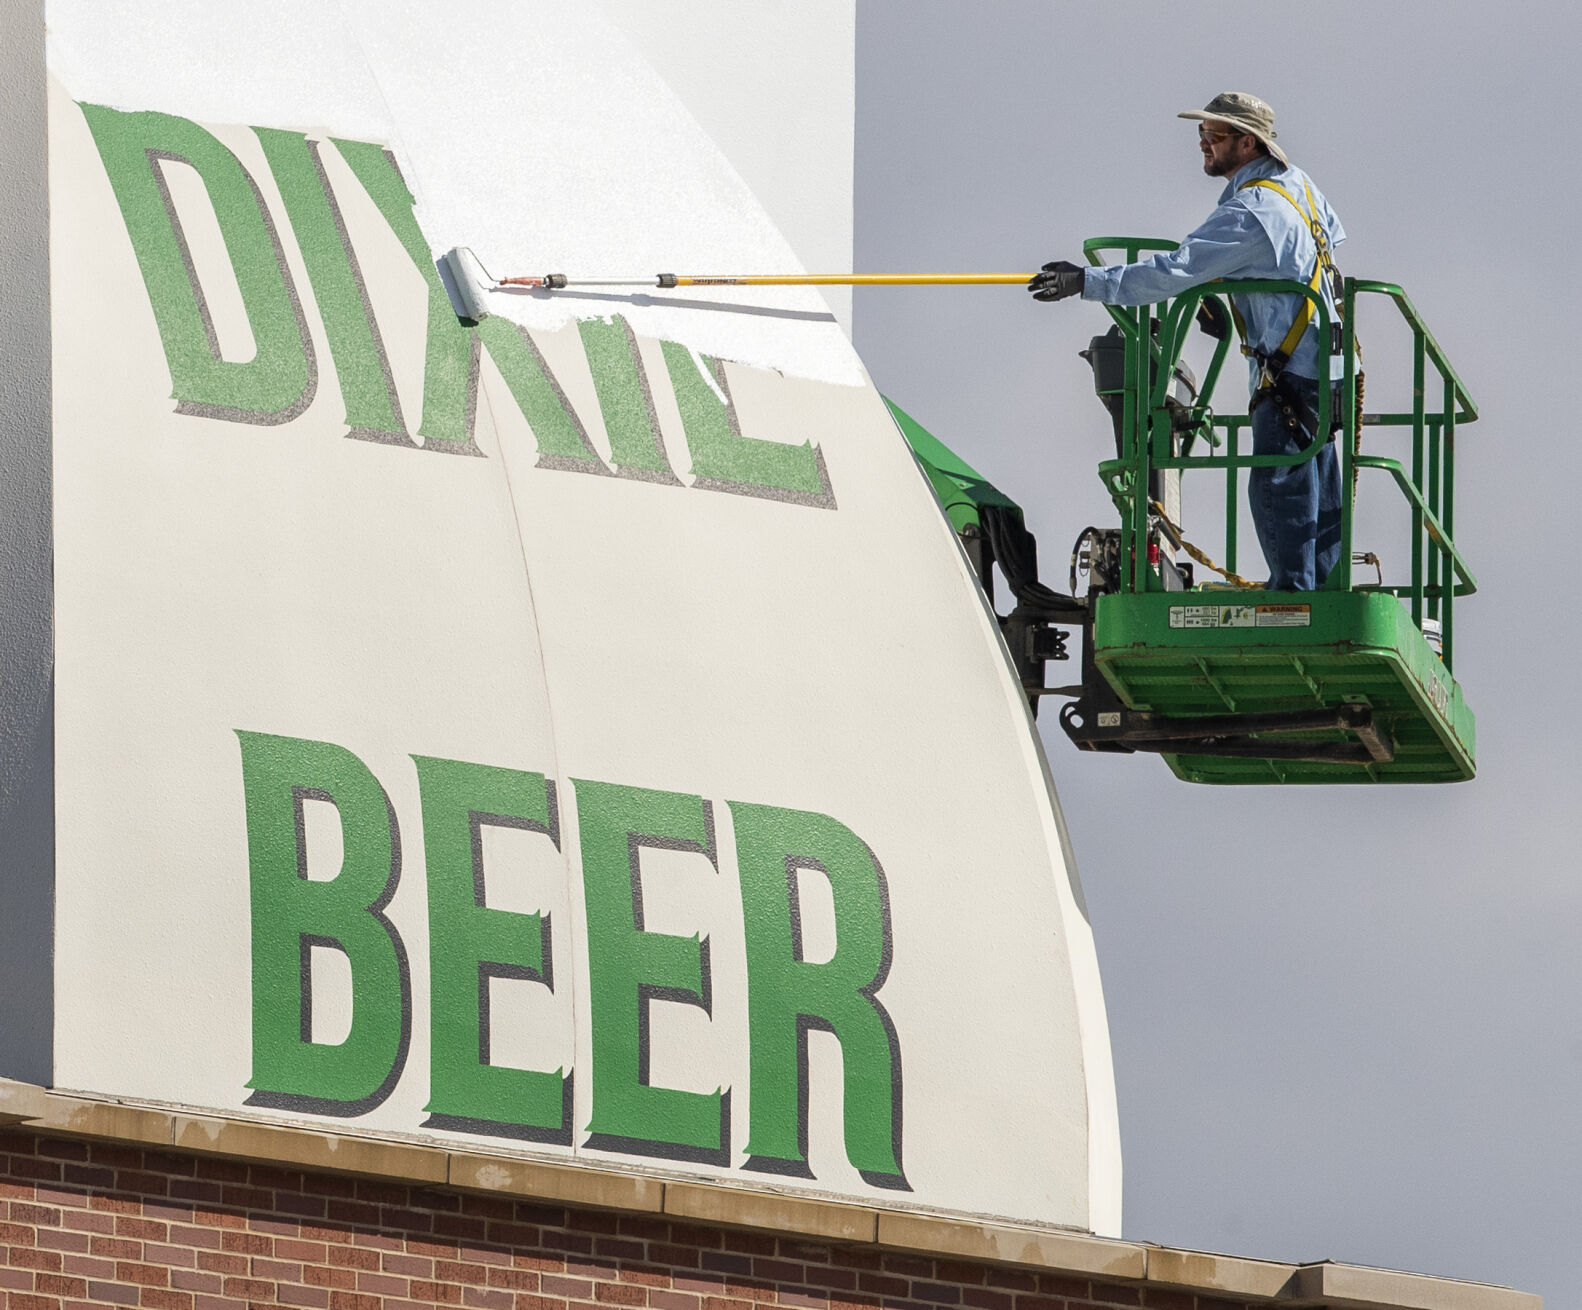 nola.com - Ian McNulty - Dixie Beer name removed from New Orleans brewery; see timeline to become Faubourg